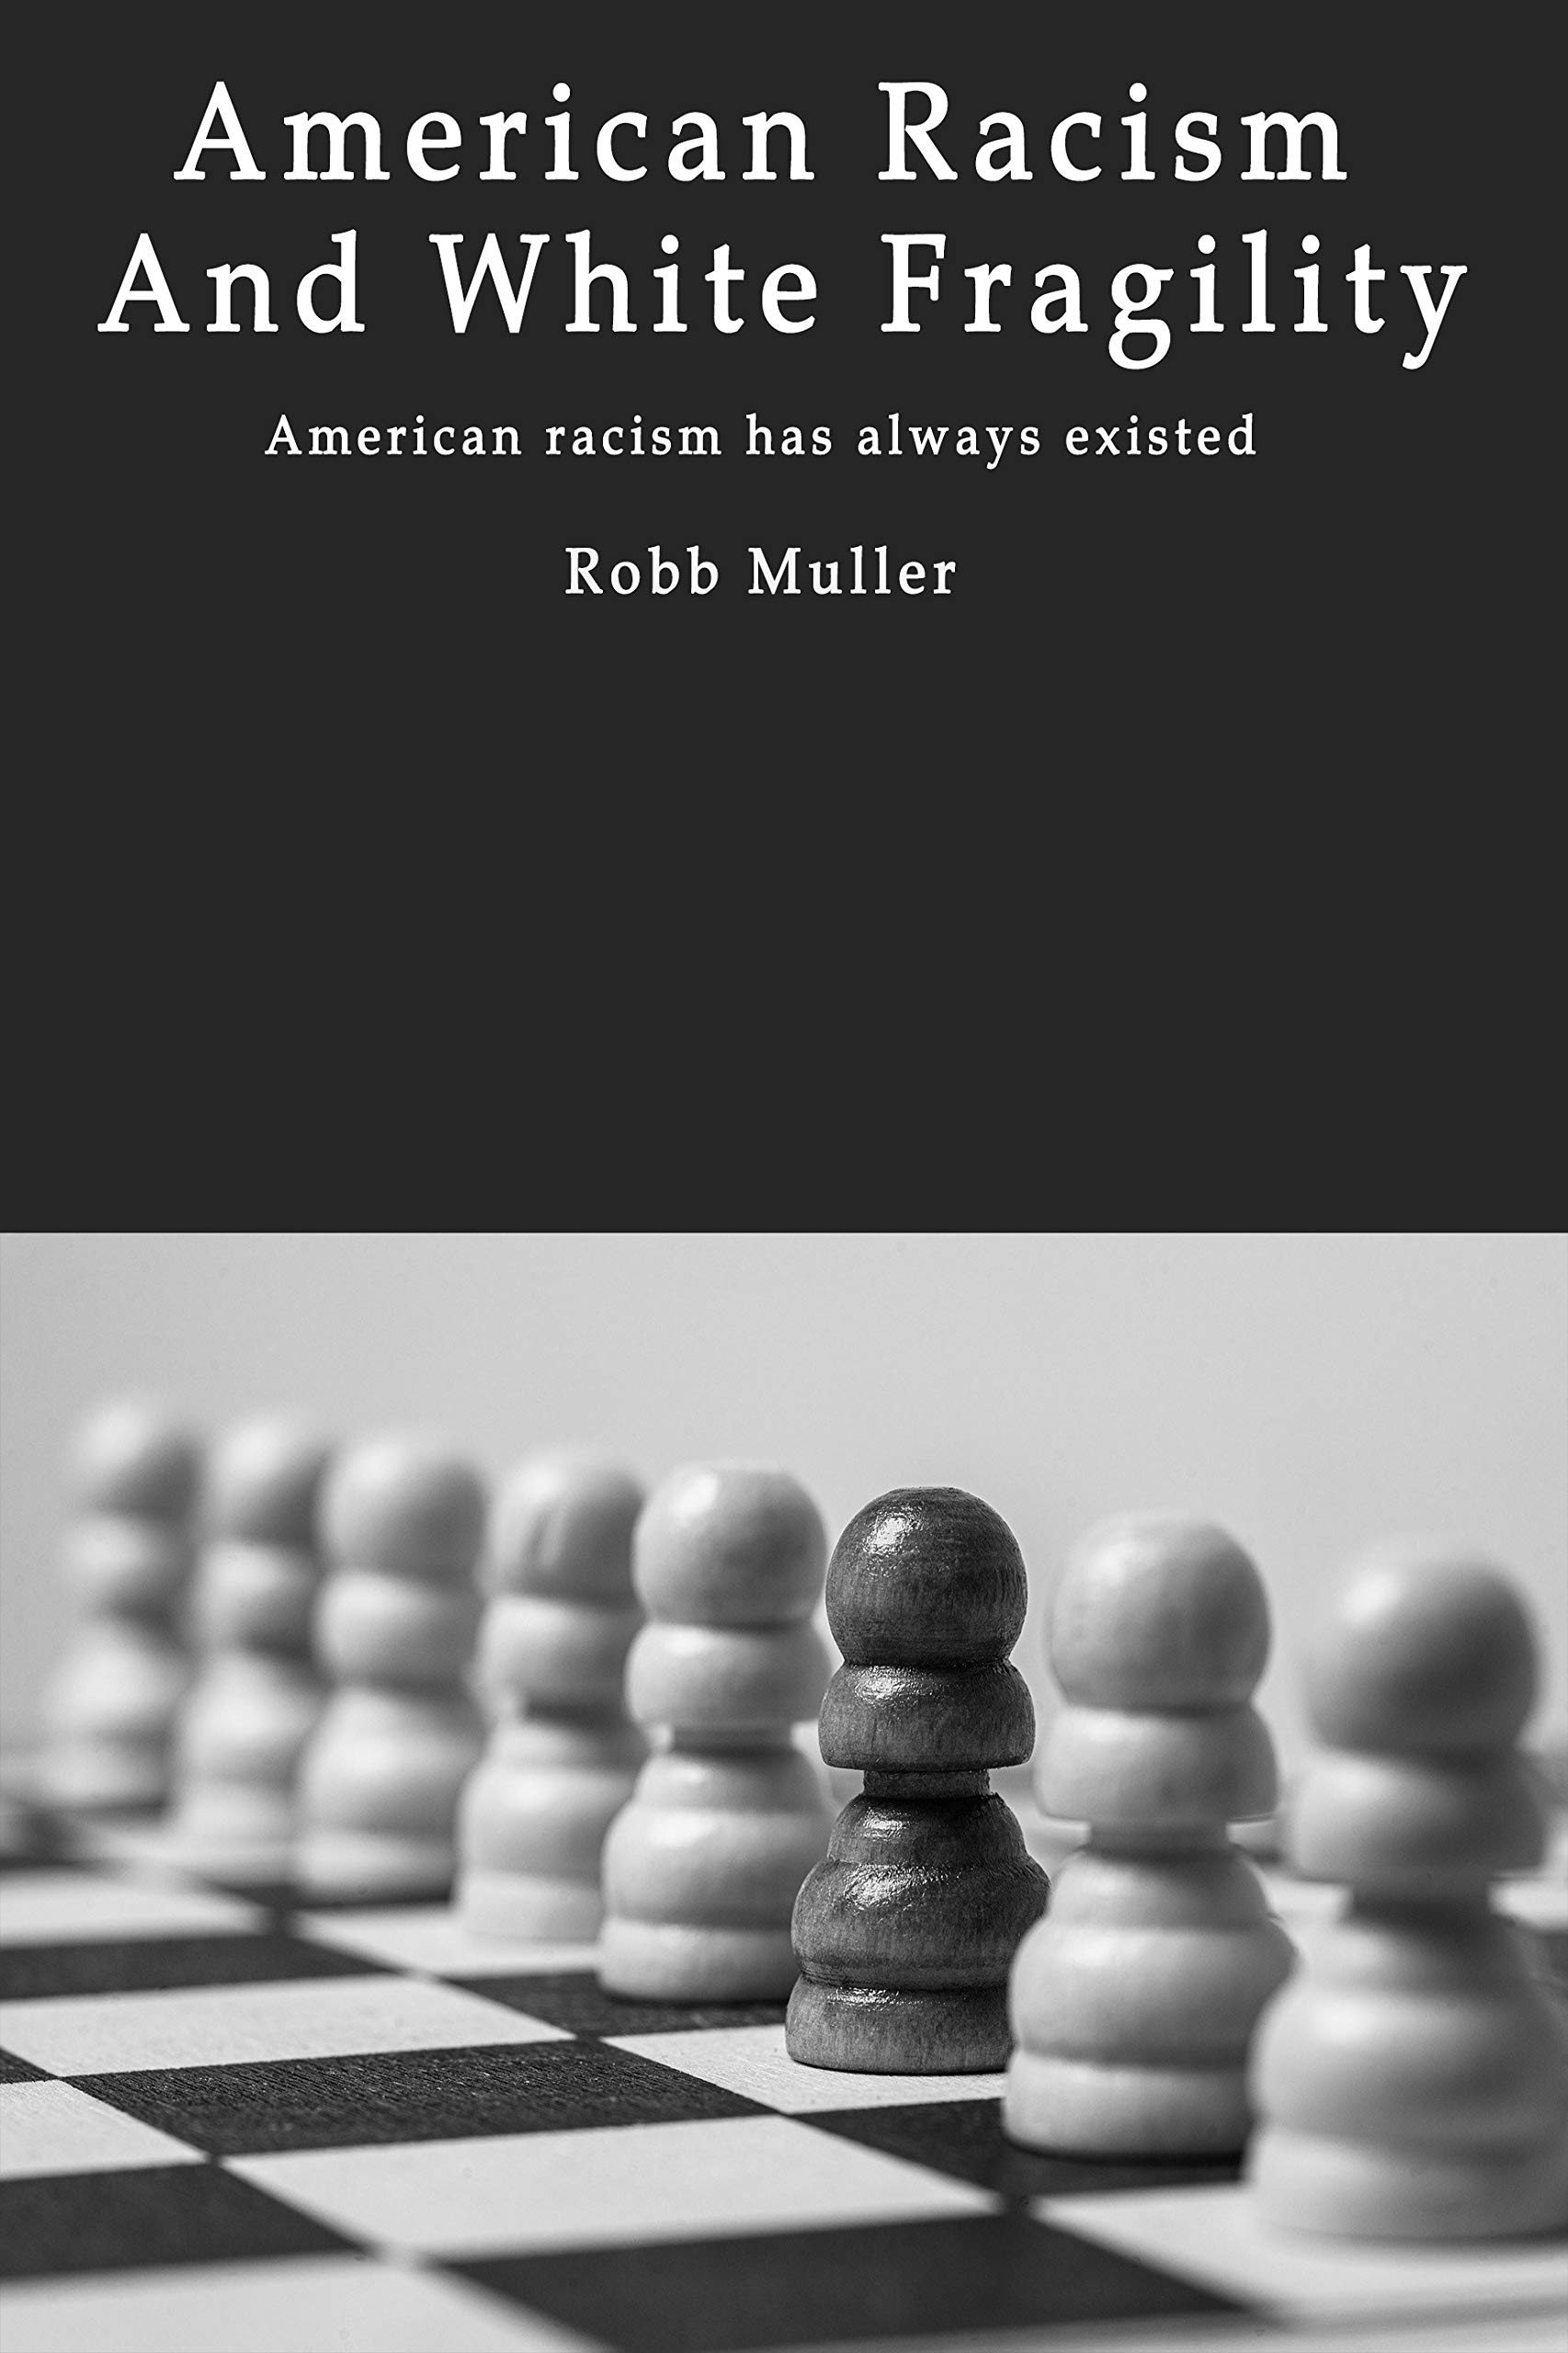 American Racism And White Fragility: American racism has always existed